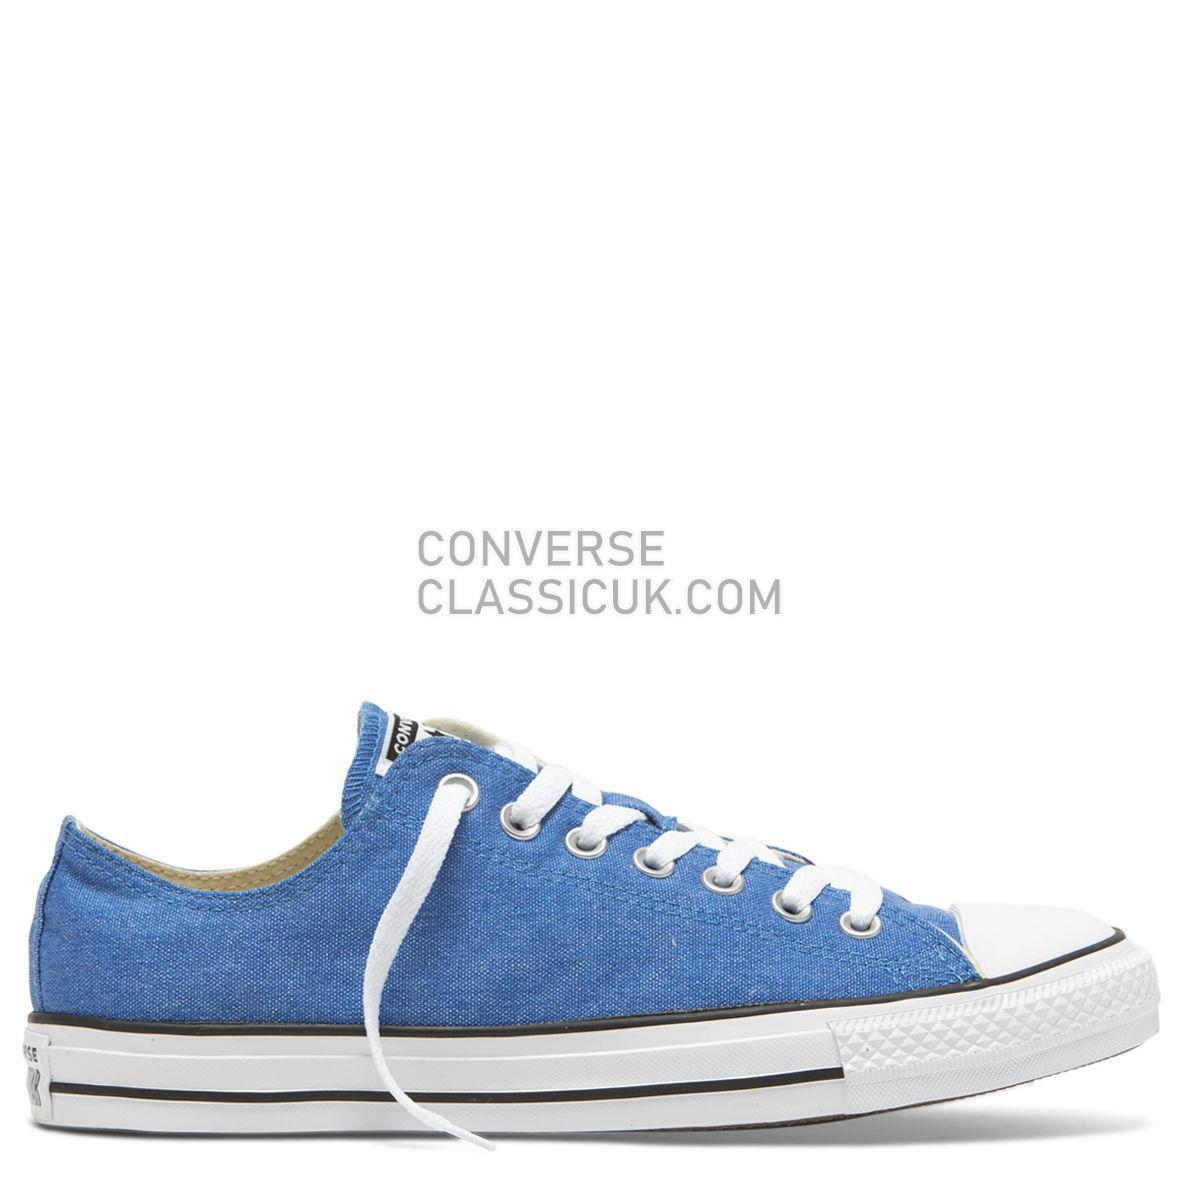 Converse Chuck Taylor Washed Ashore Low Top Totally Blue Mens Womens Unisex 164288 Totally Blue/White/Black Shoes